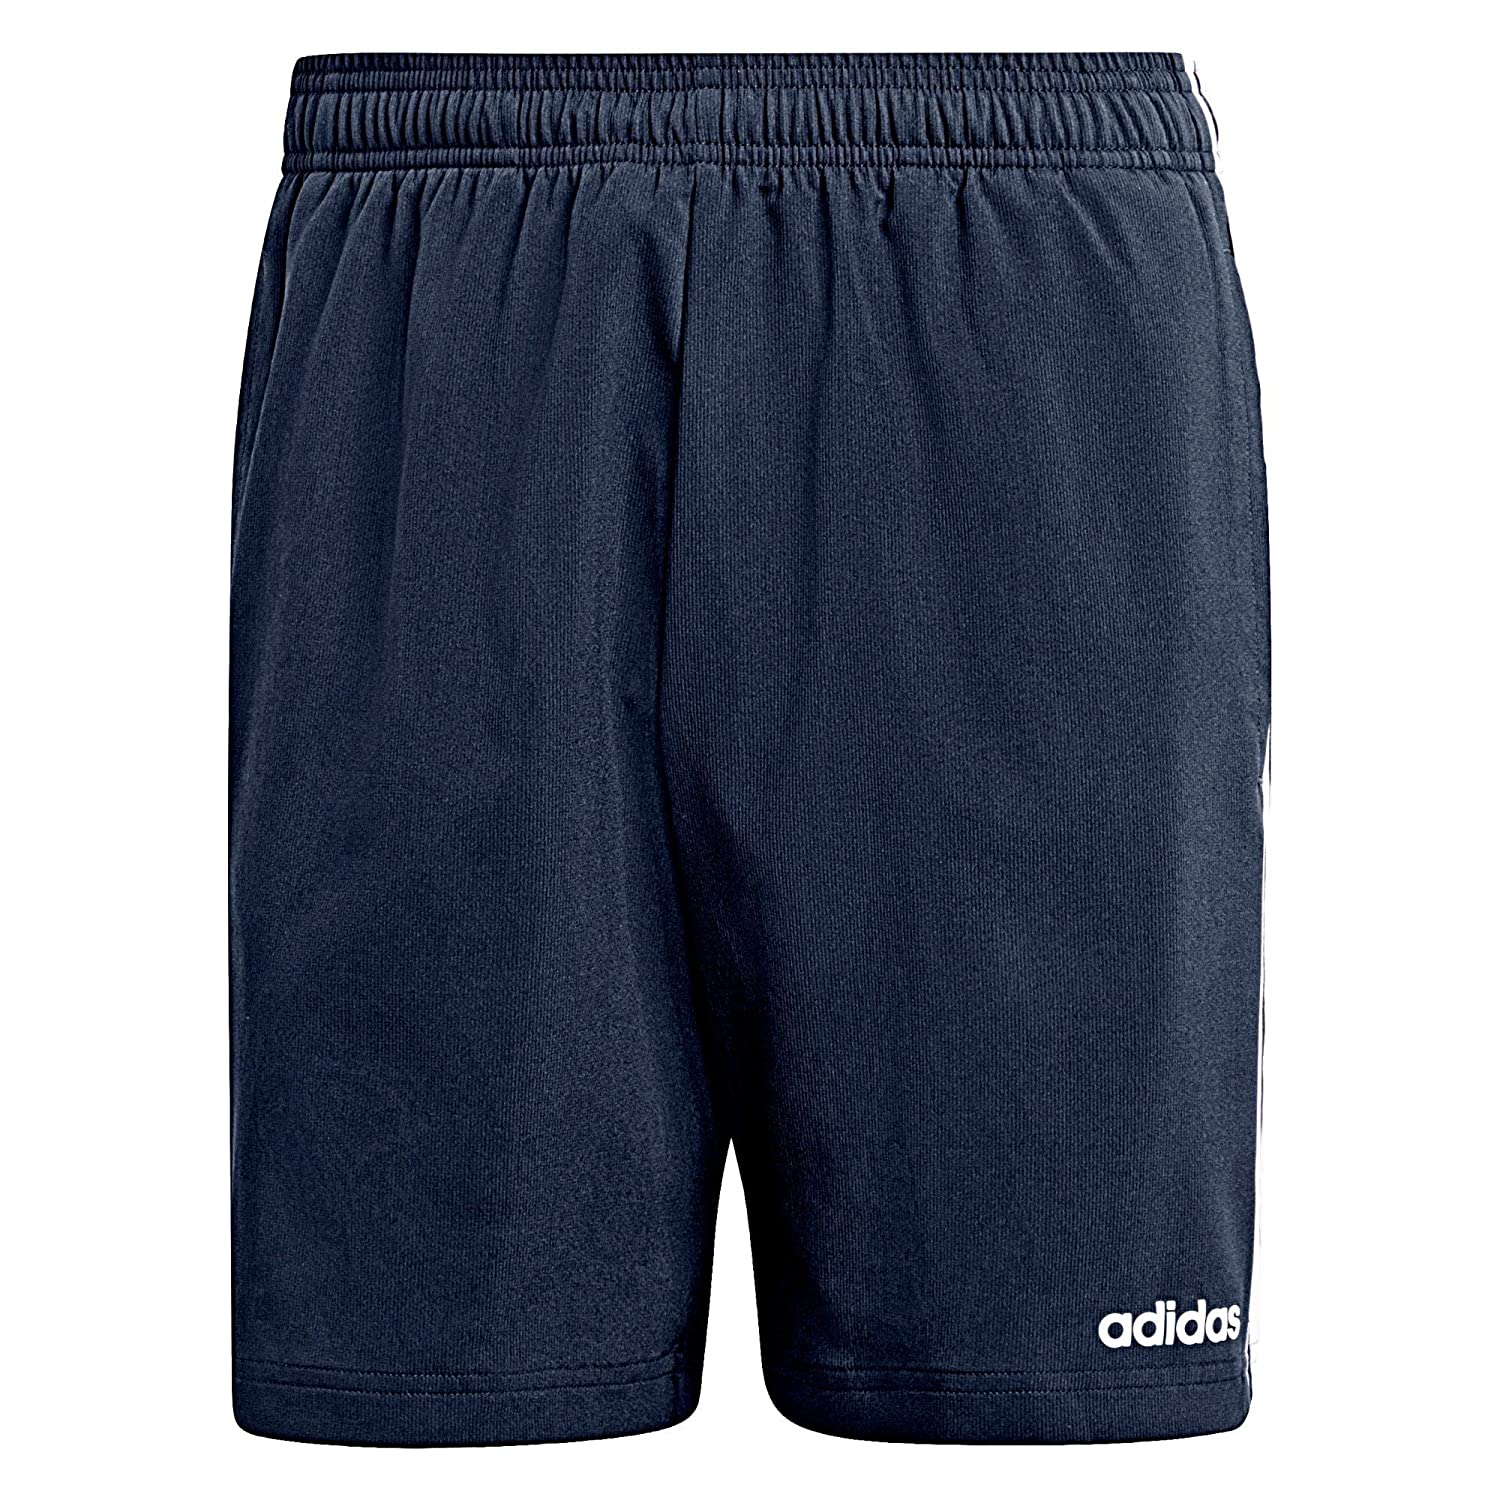 55c41ce5efb32 adidas Men's Essentials 3 Stripes 7in Chelsea Sport Shorts: Amazon.co.uk:  Sports & Outdoors